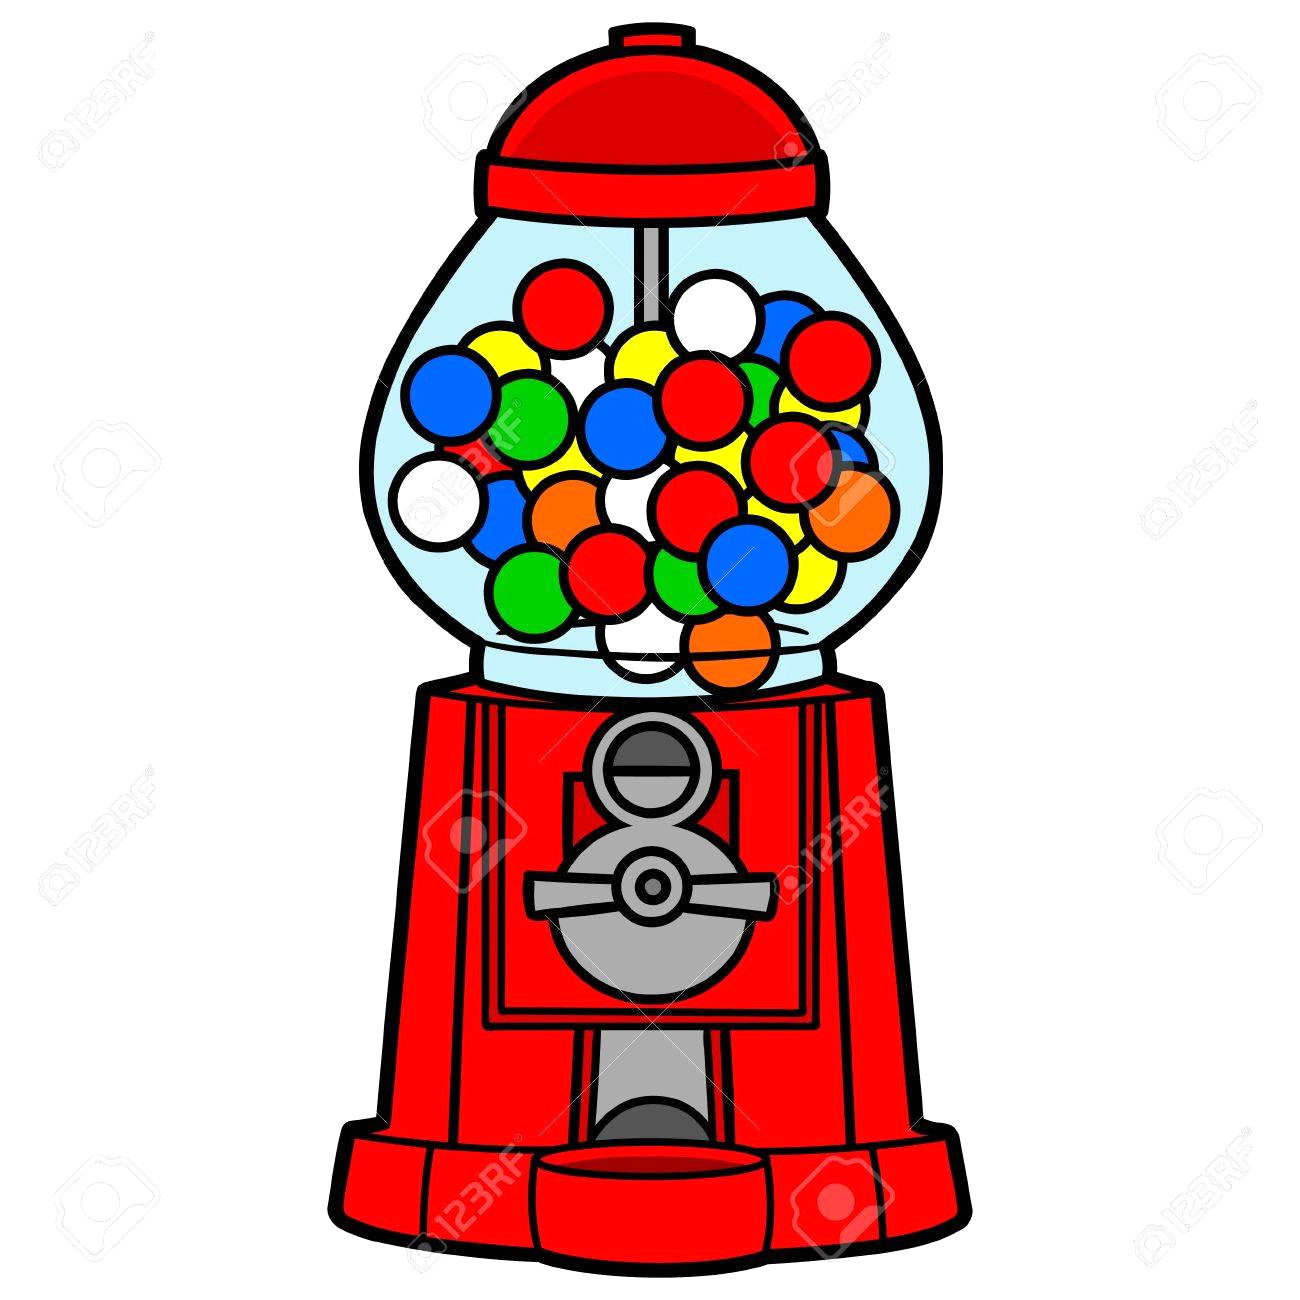 hight resolution of 1300x1300 gumball machine royalty free cliparts vectors and stock stunning